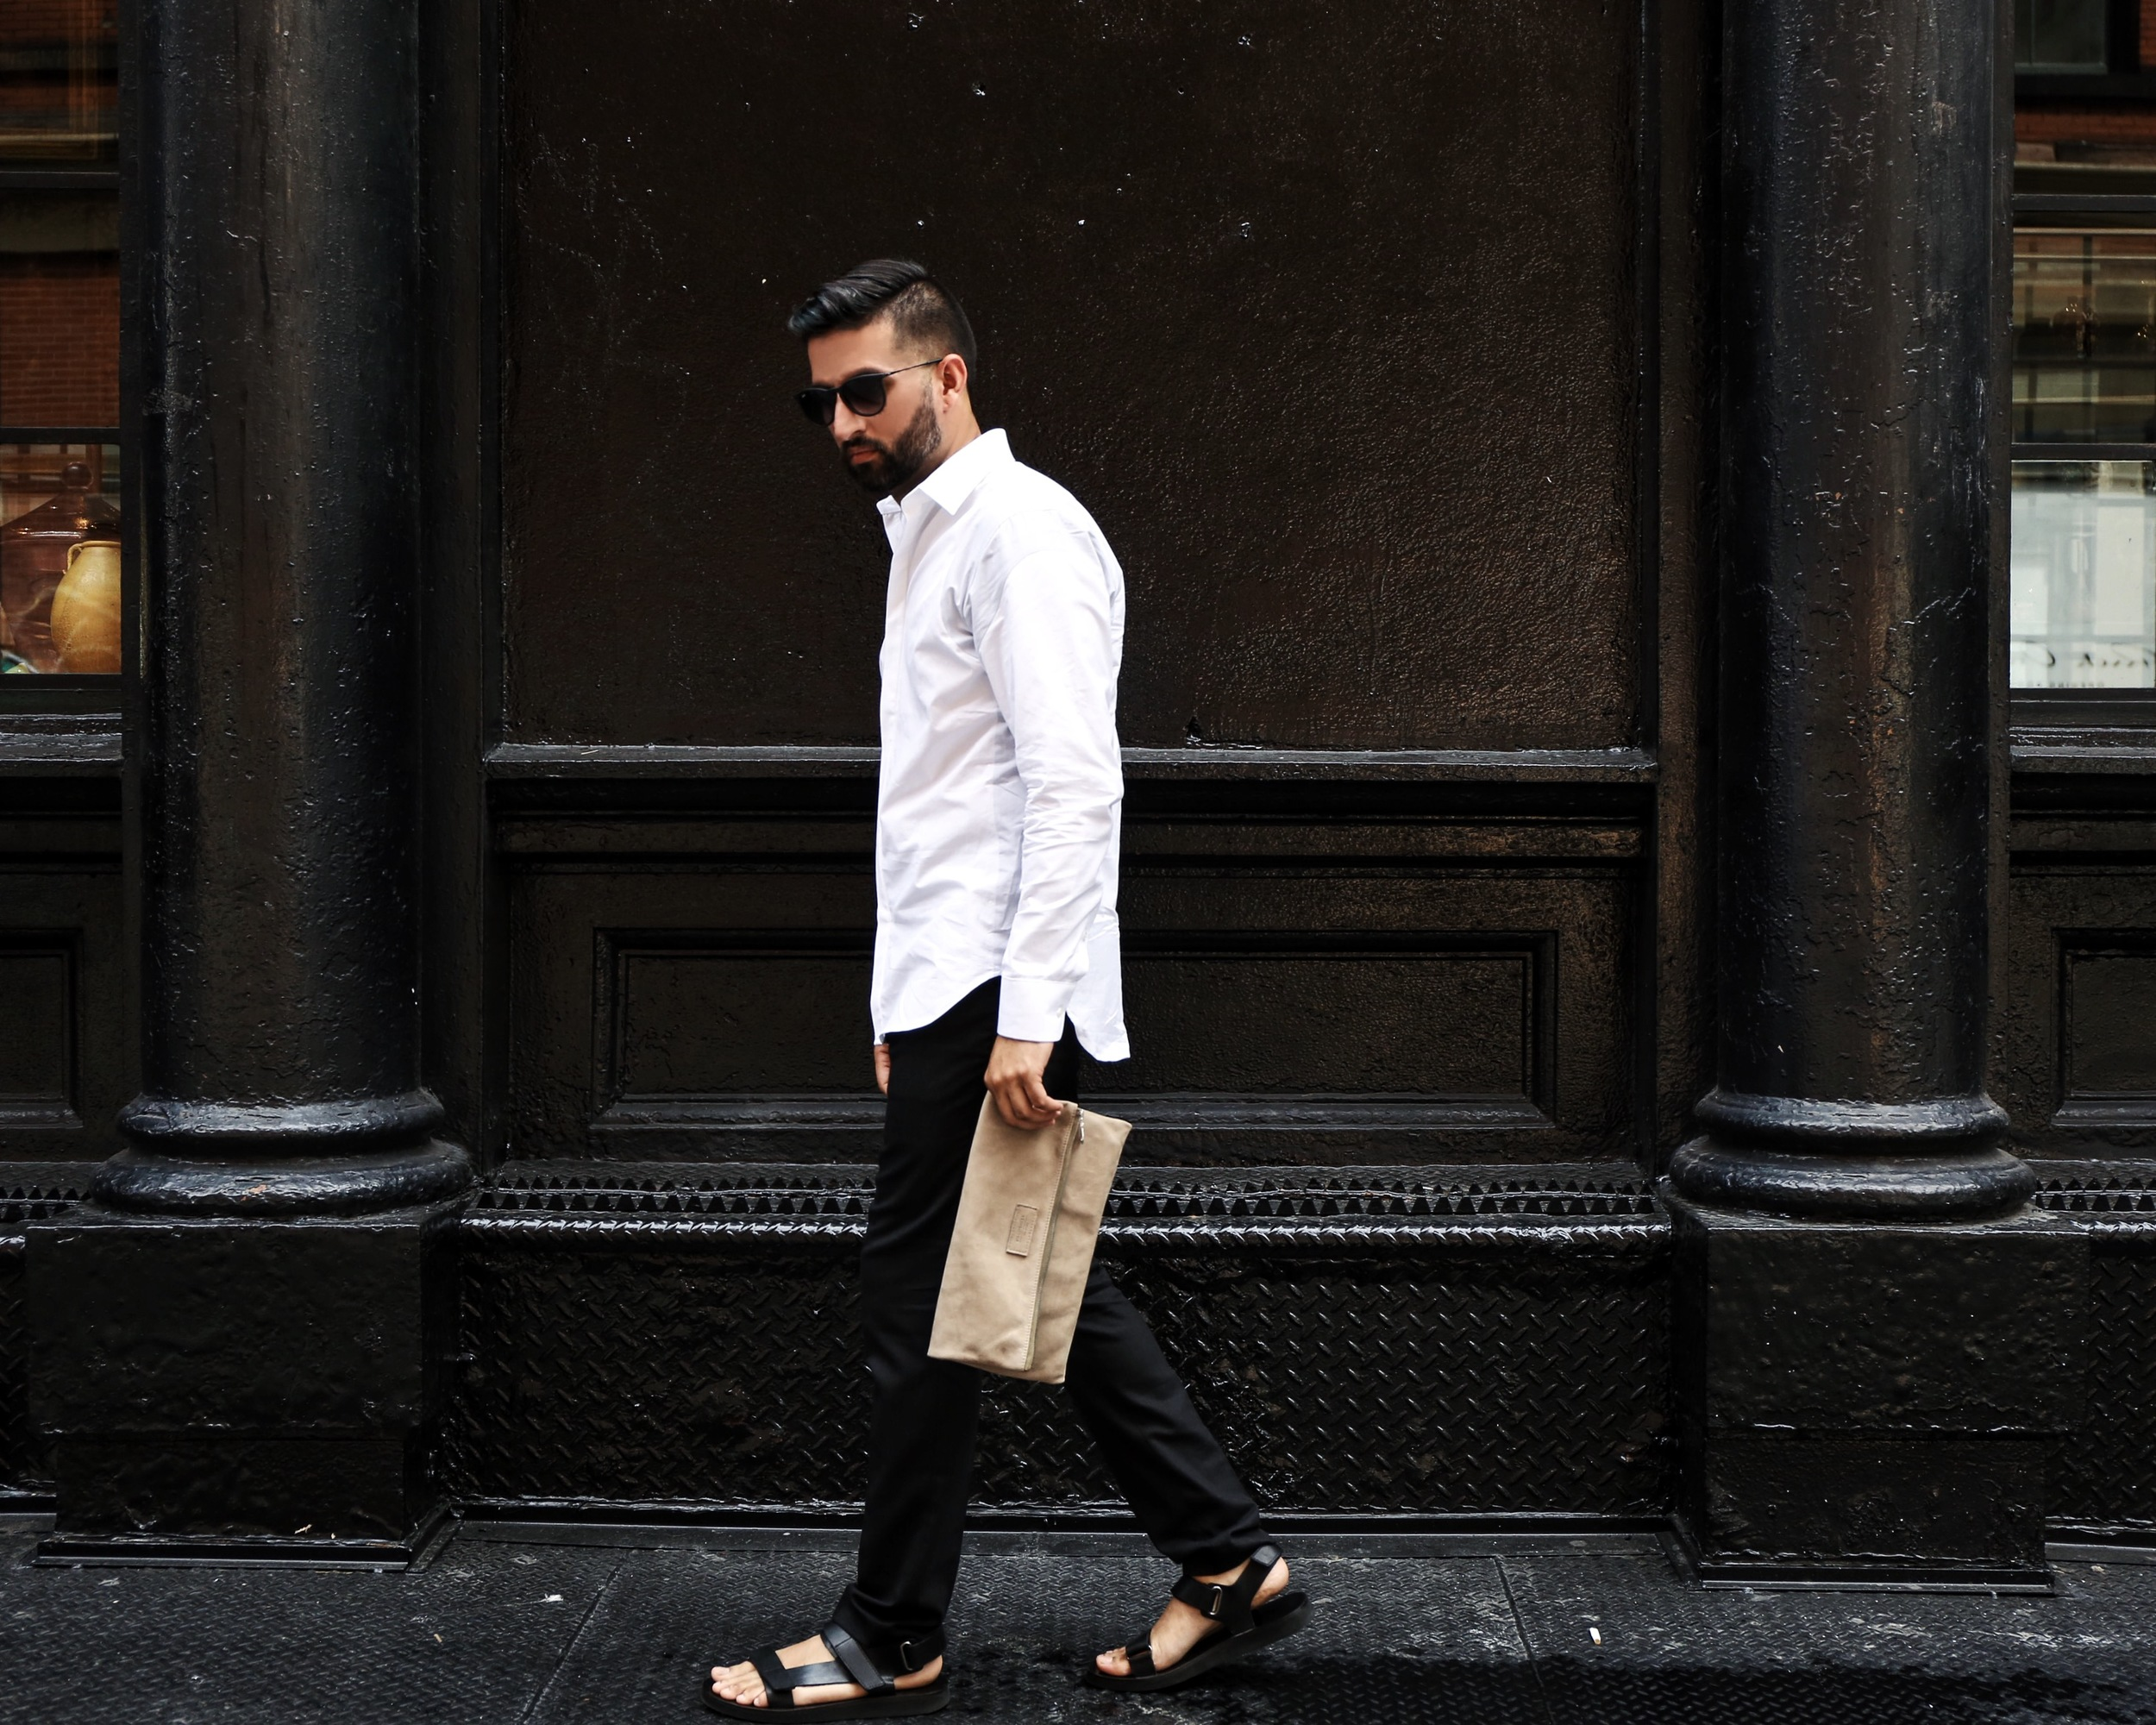 Trousers by Rag and Bone and Shades by RayBan